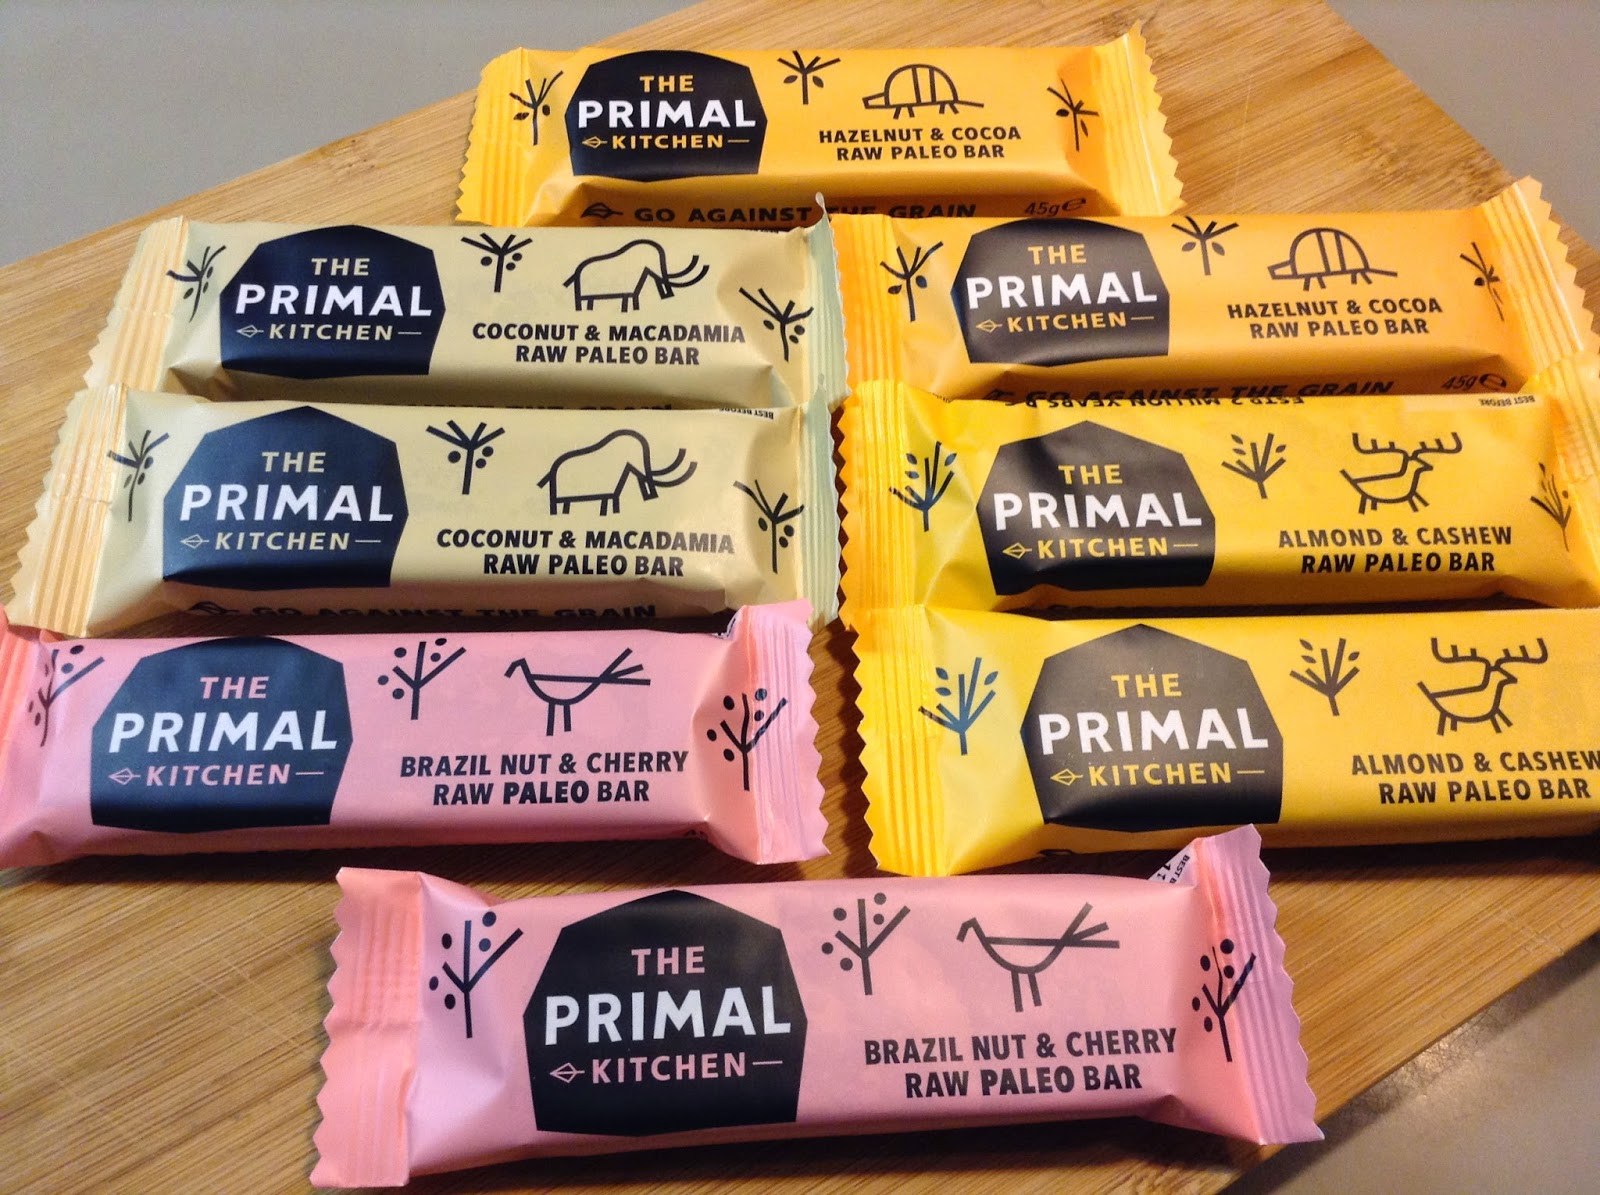 The Primal Kitchen Bar review